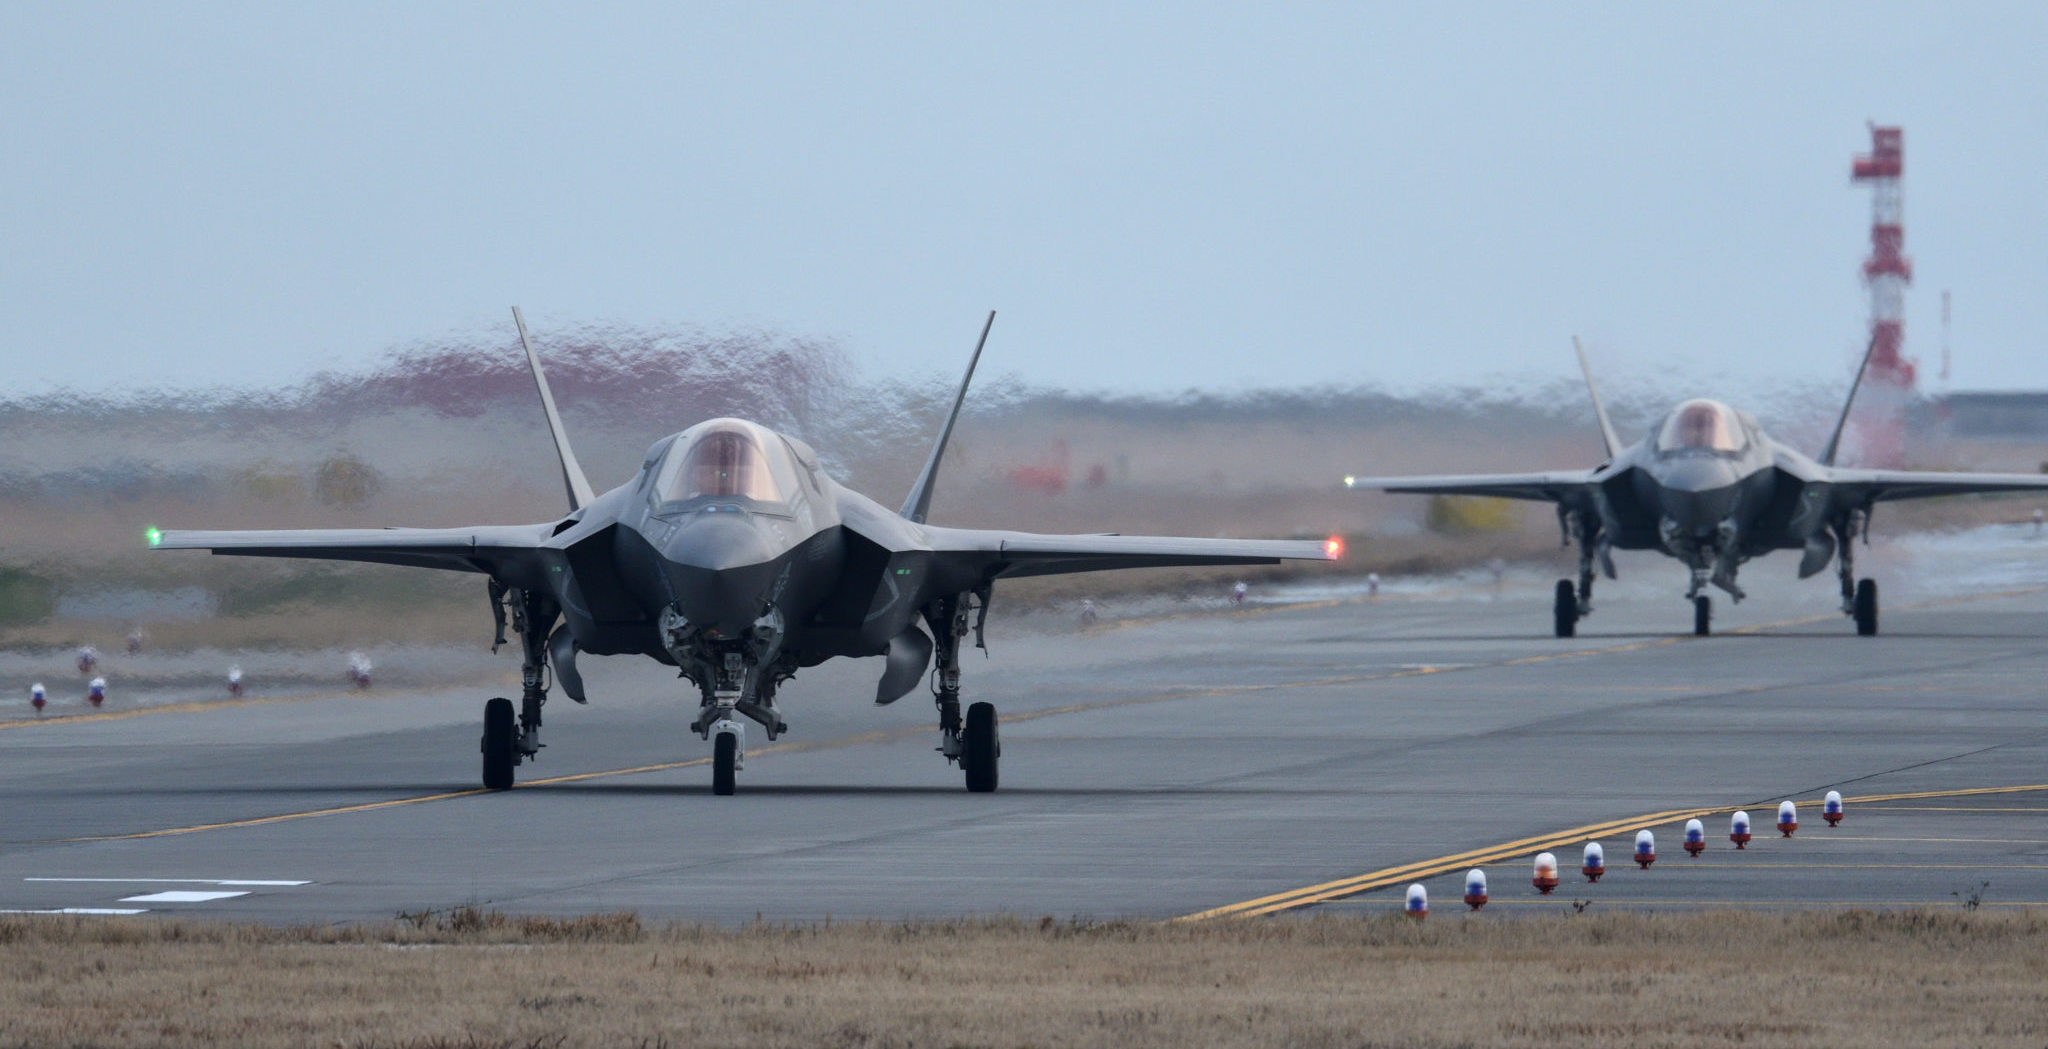 The Race to Find Japan's Missing F-35 before Russia and China